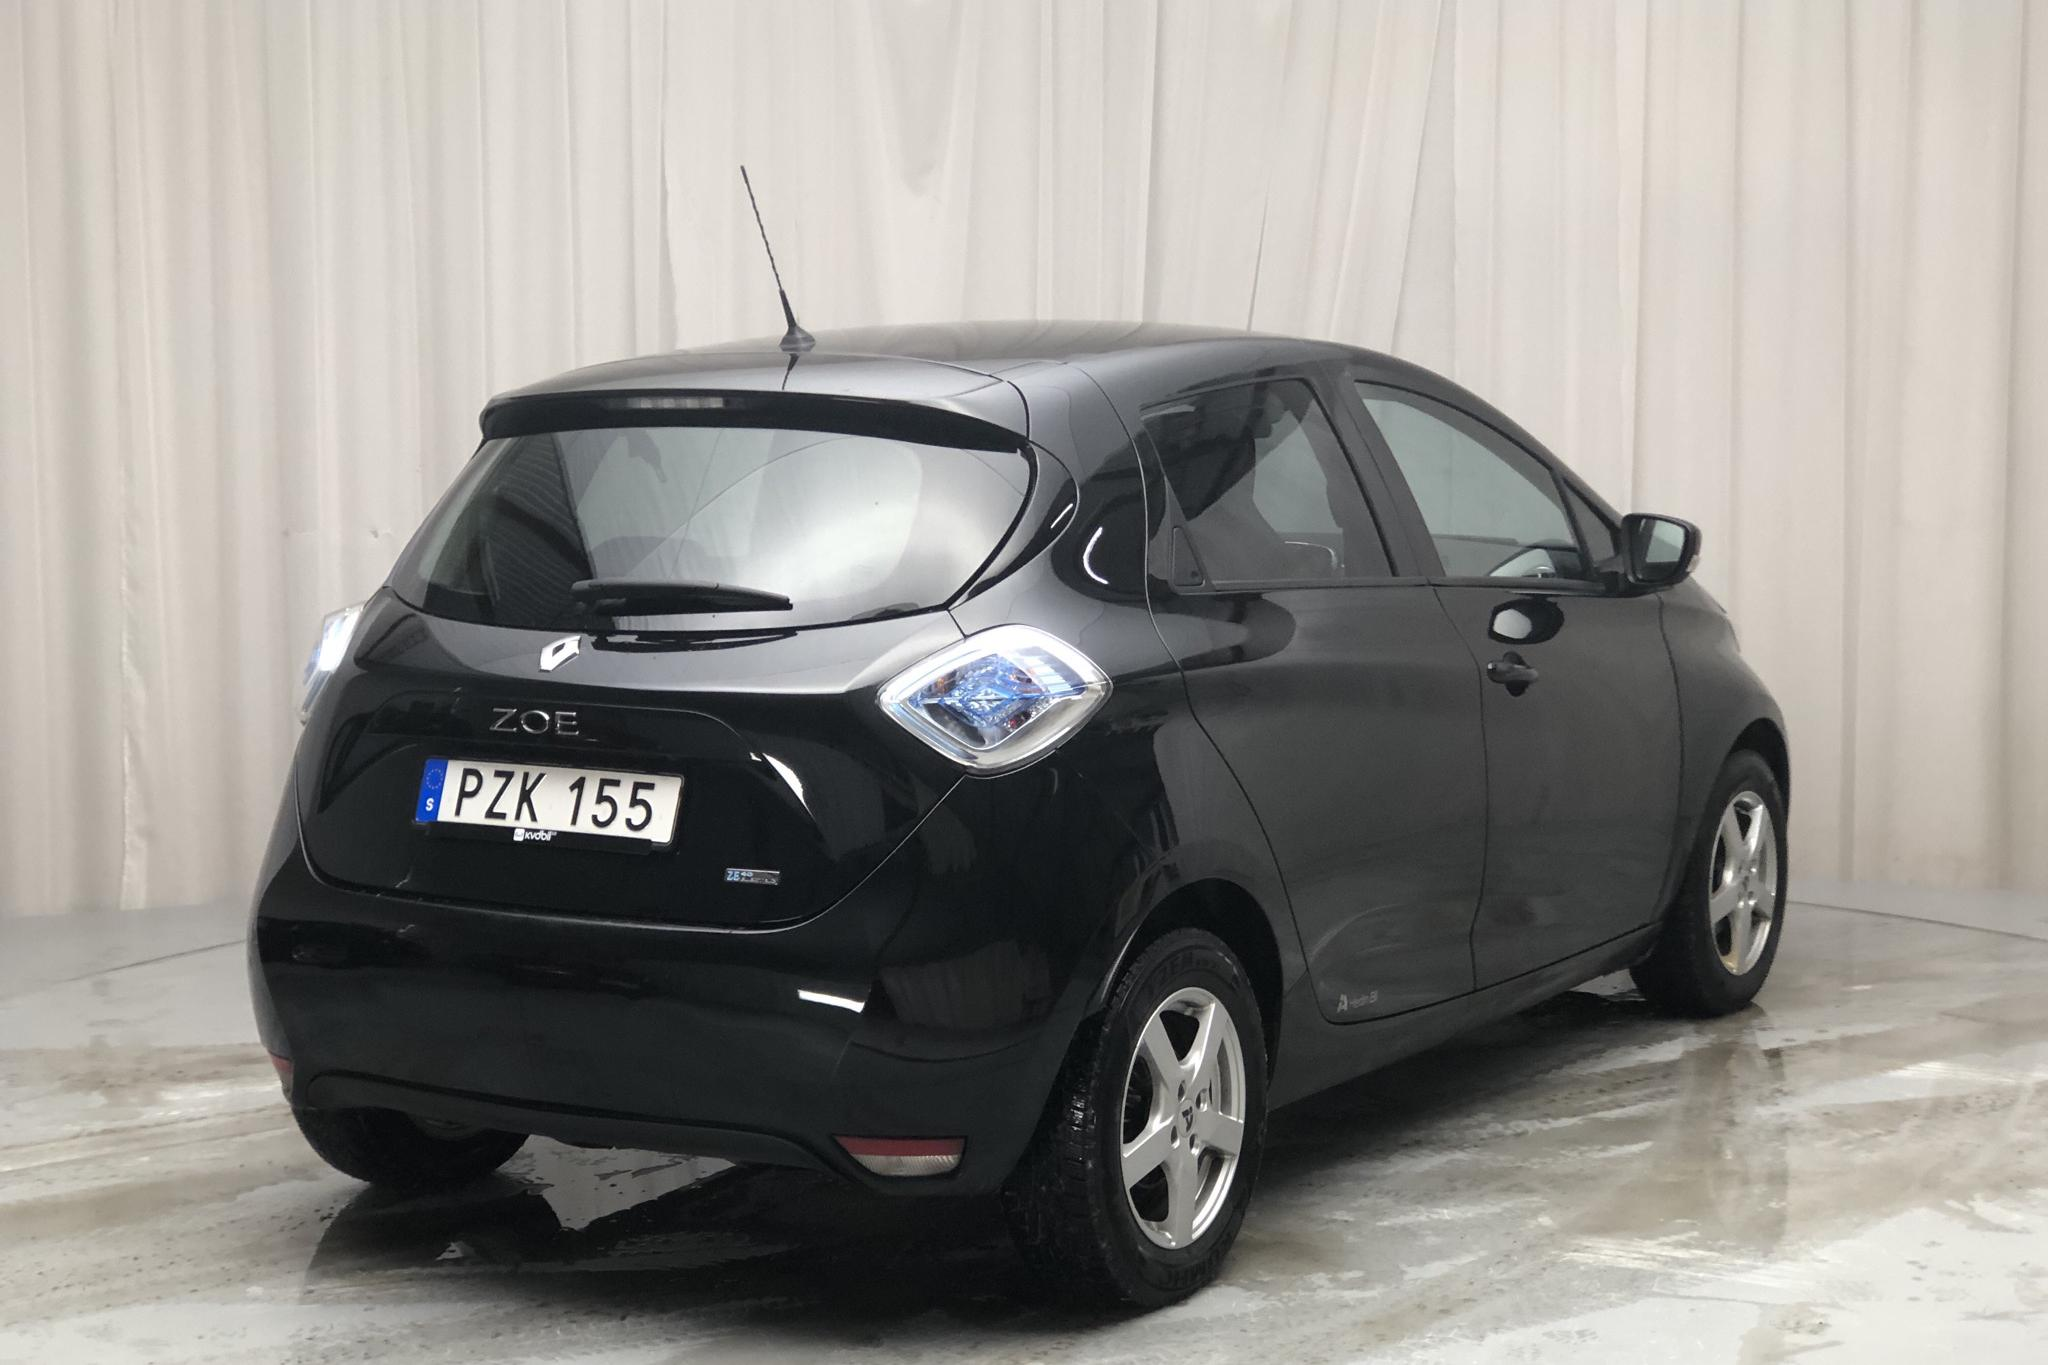 Renault Zoe 41 kWh R90 (92hk) - 105 470 km - Automatic - black - 2017